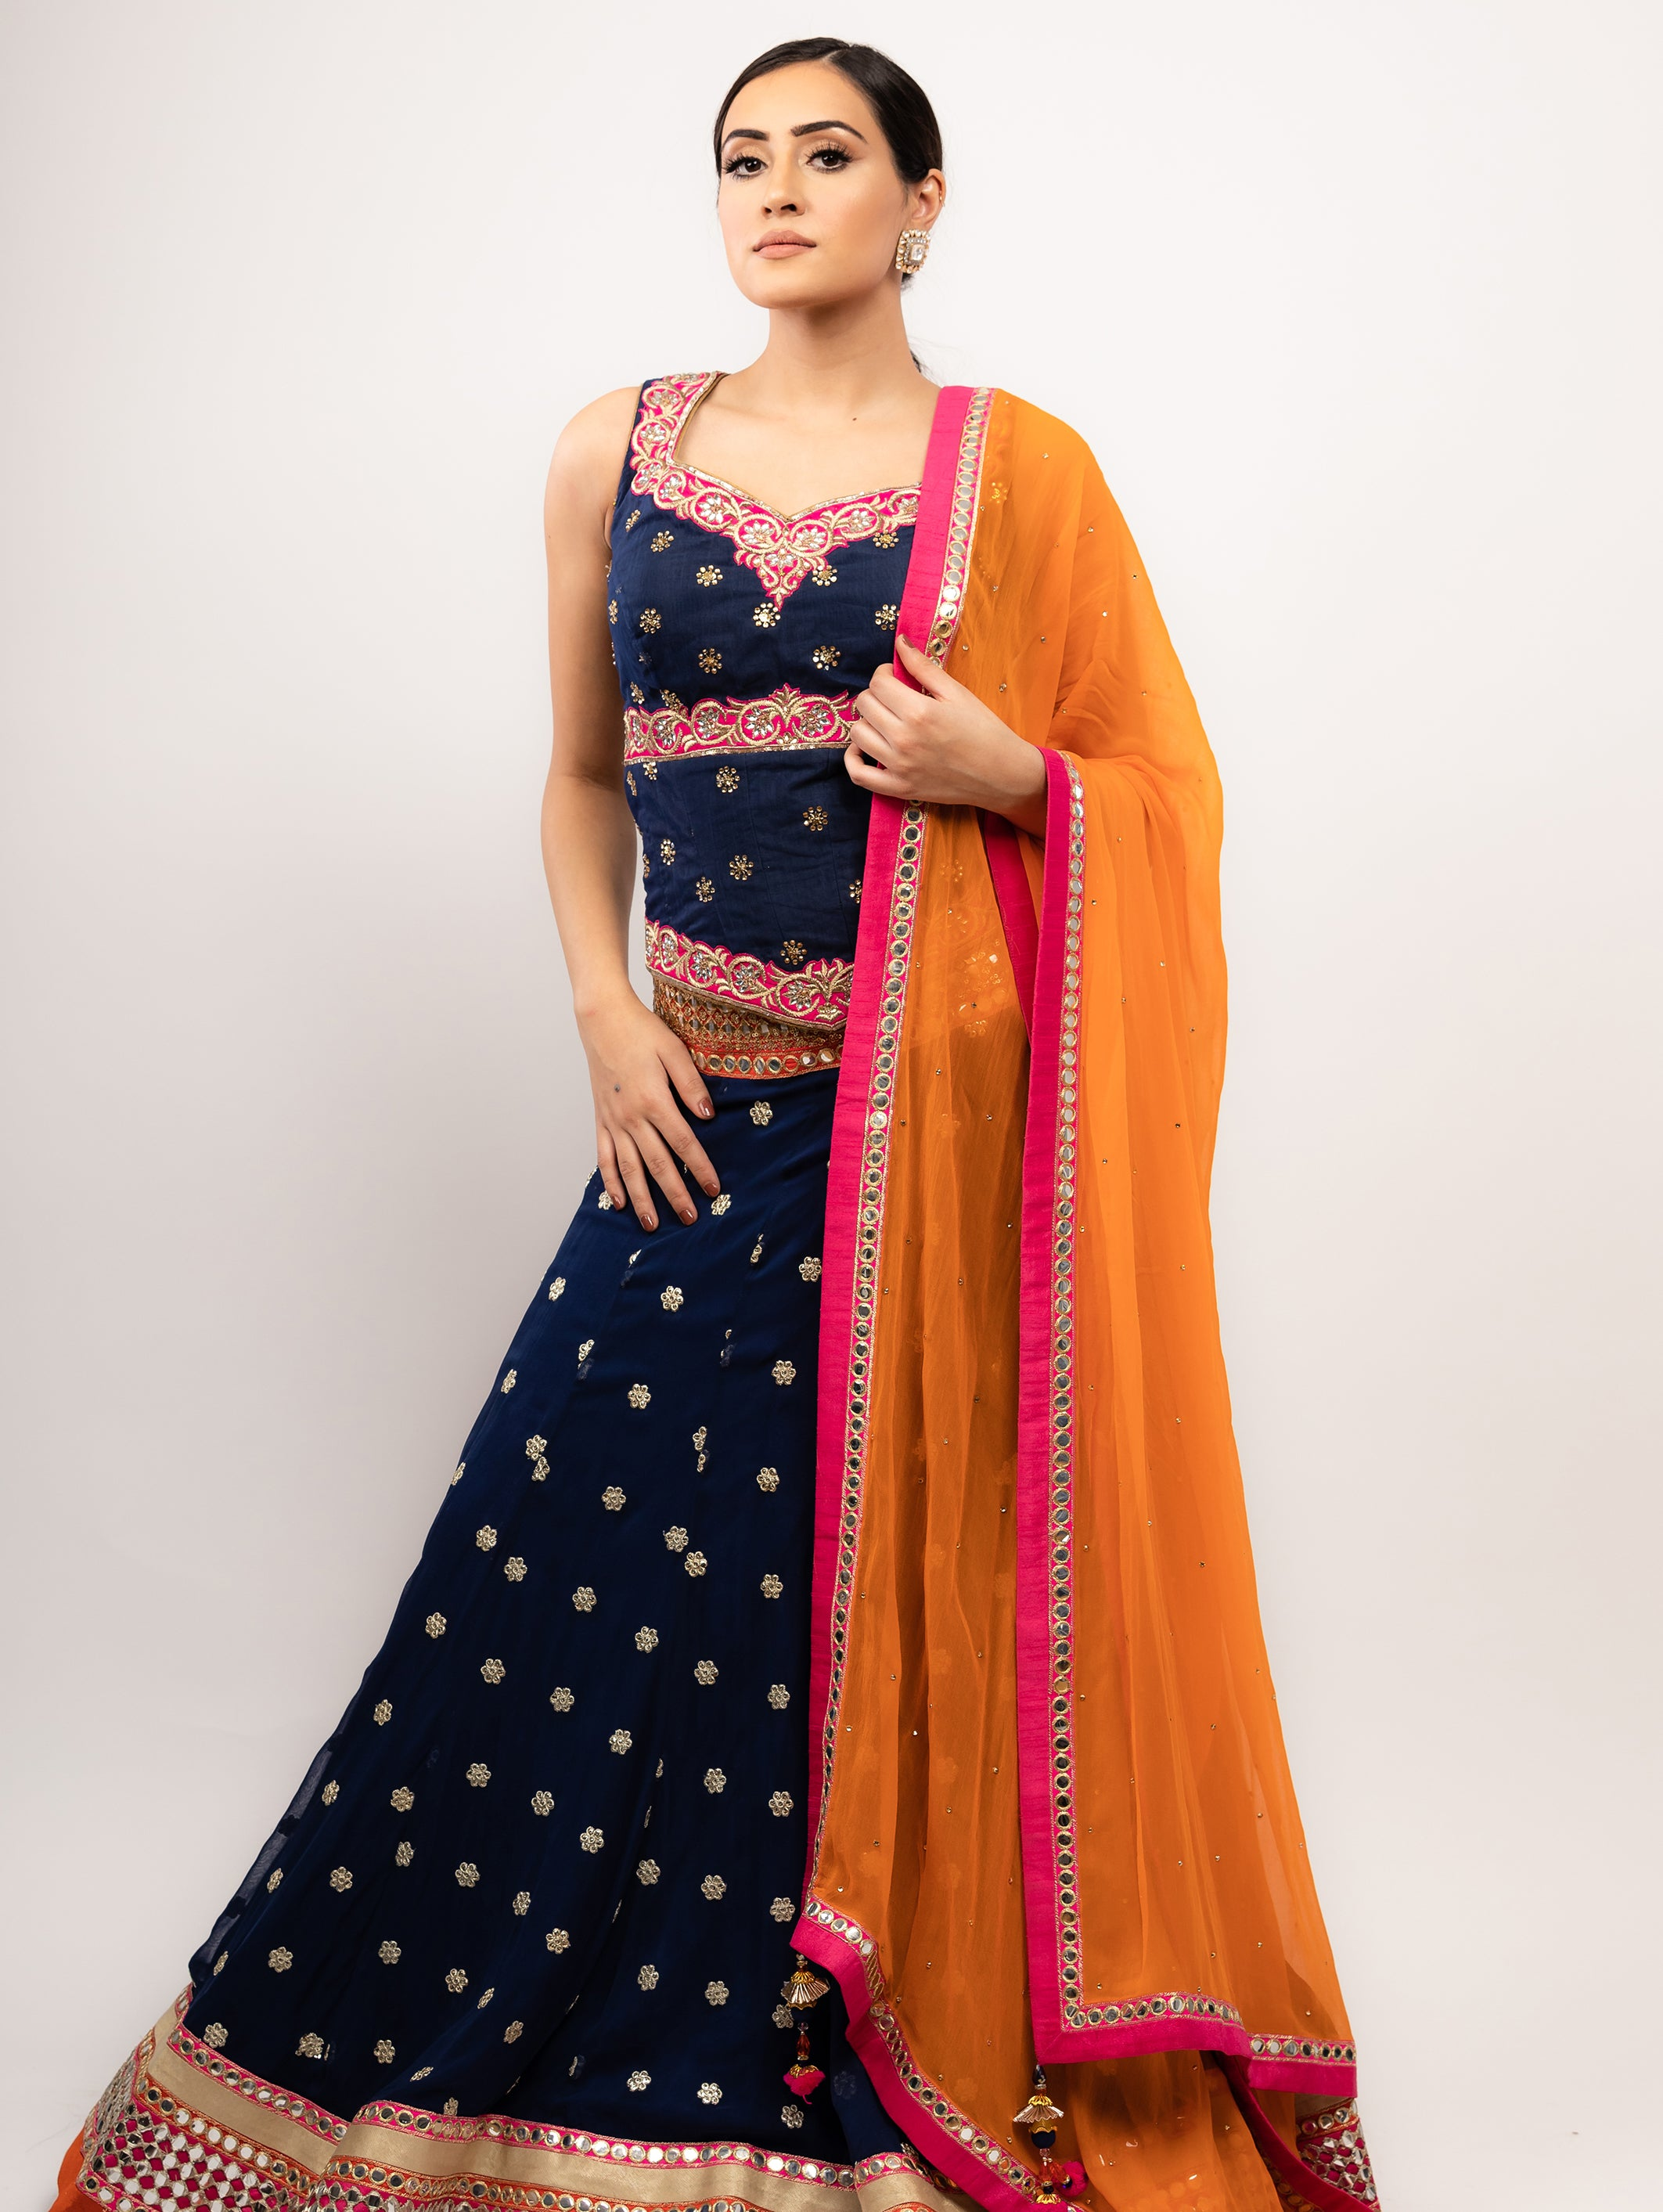 Noorani Bridal Lehenga - Indian Bridal Wear - bAnuDesigns